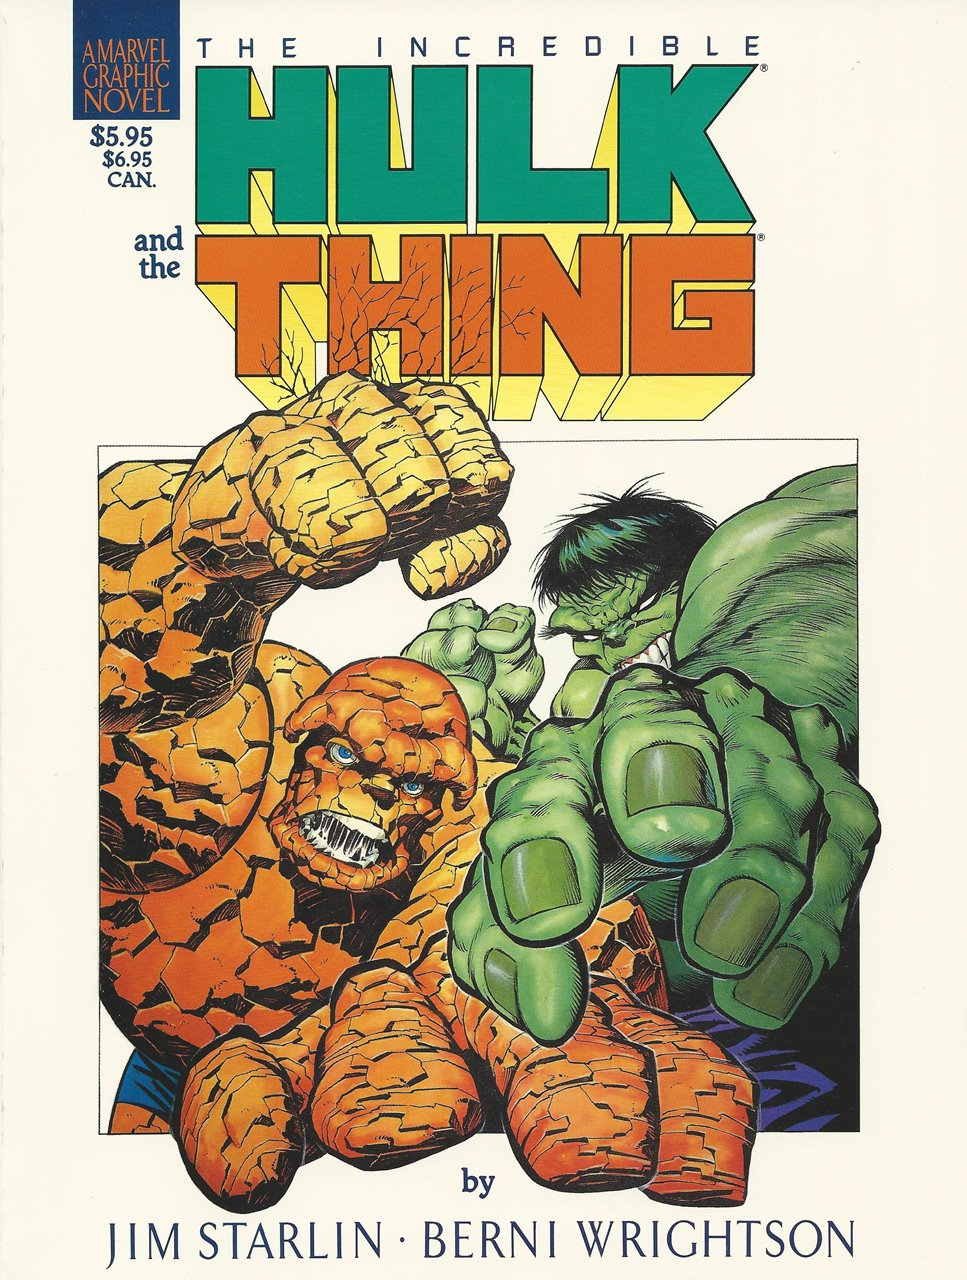 Marvel Graphic Novel (1982) #29, cover by Berni Wrightson.